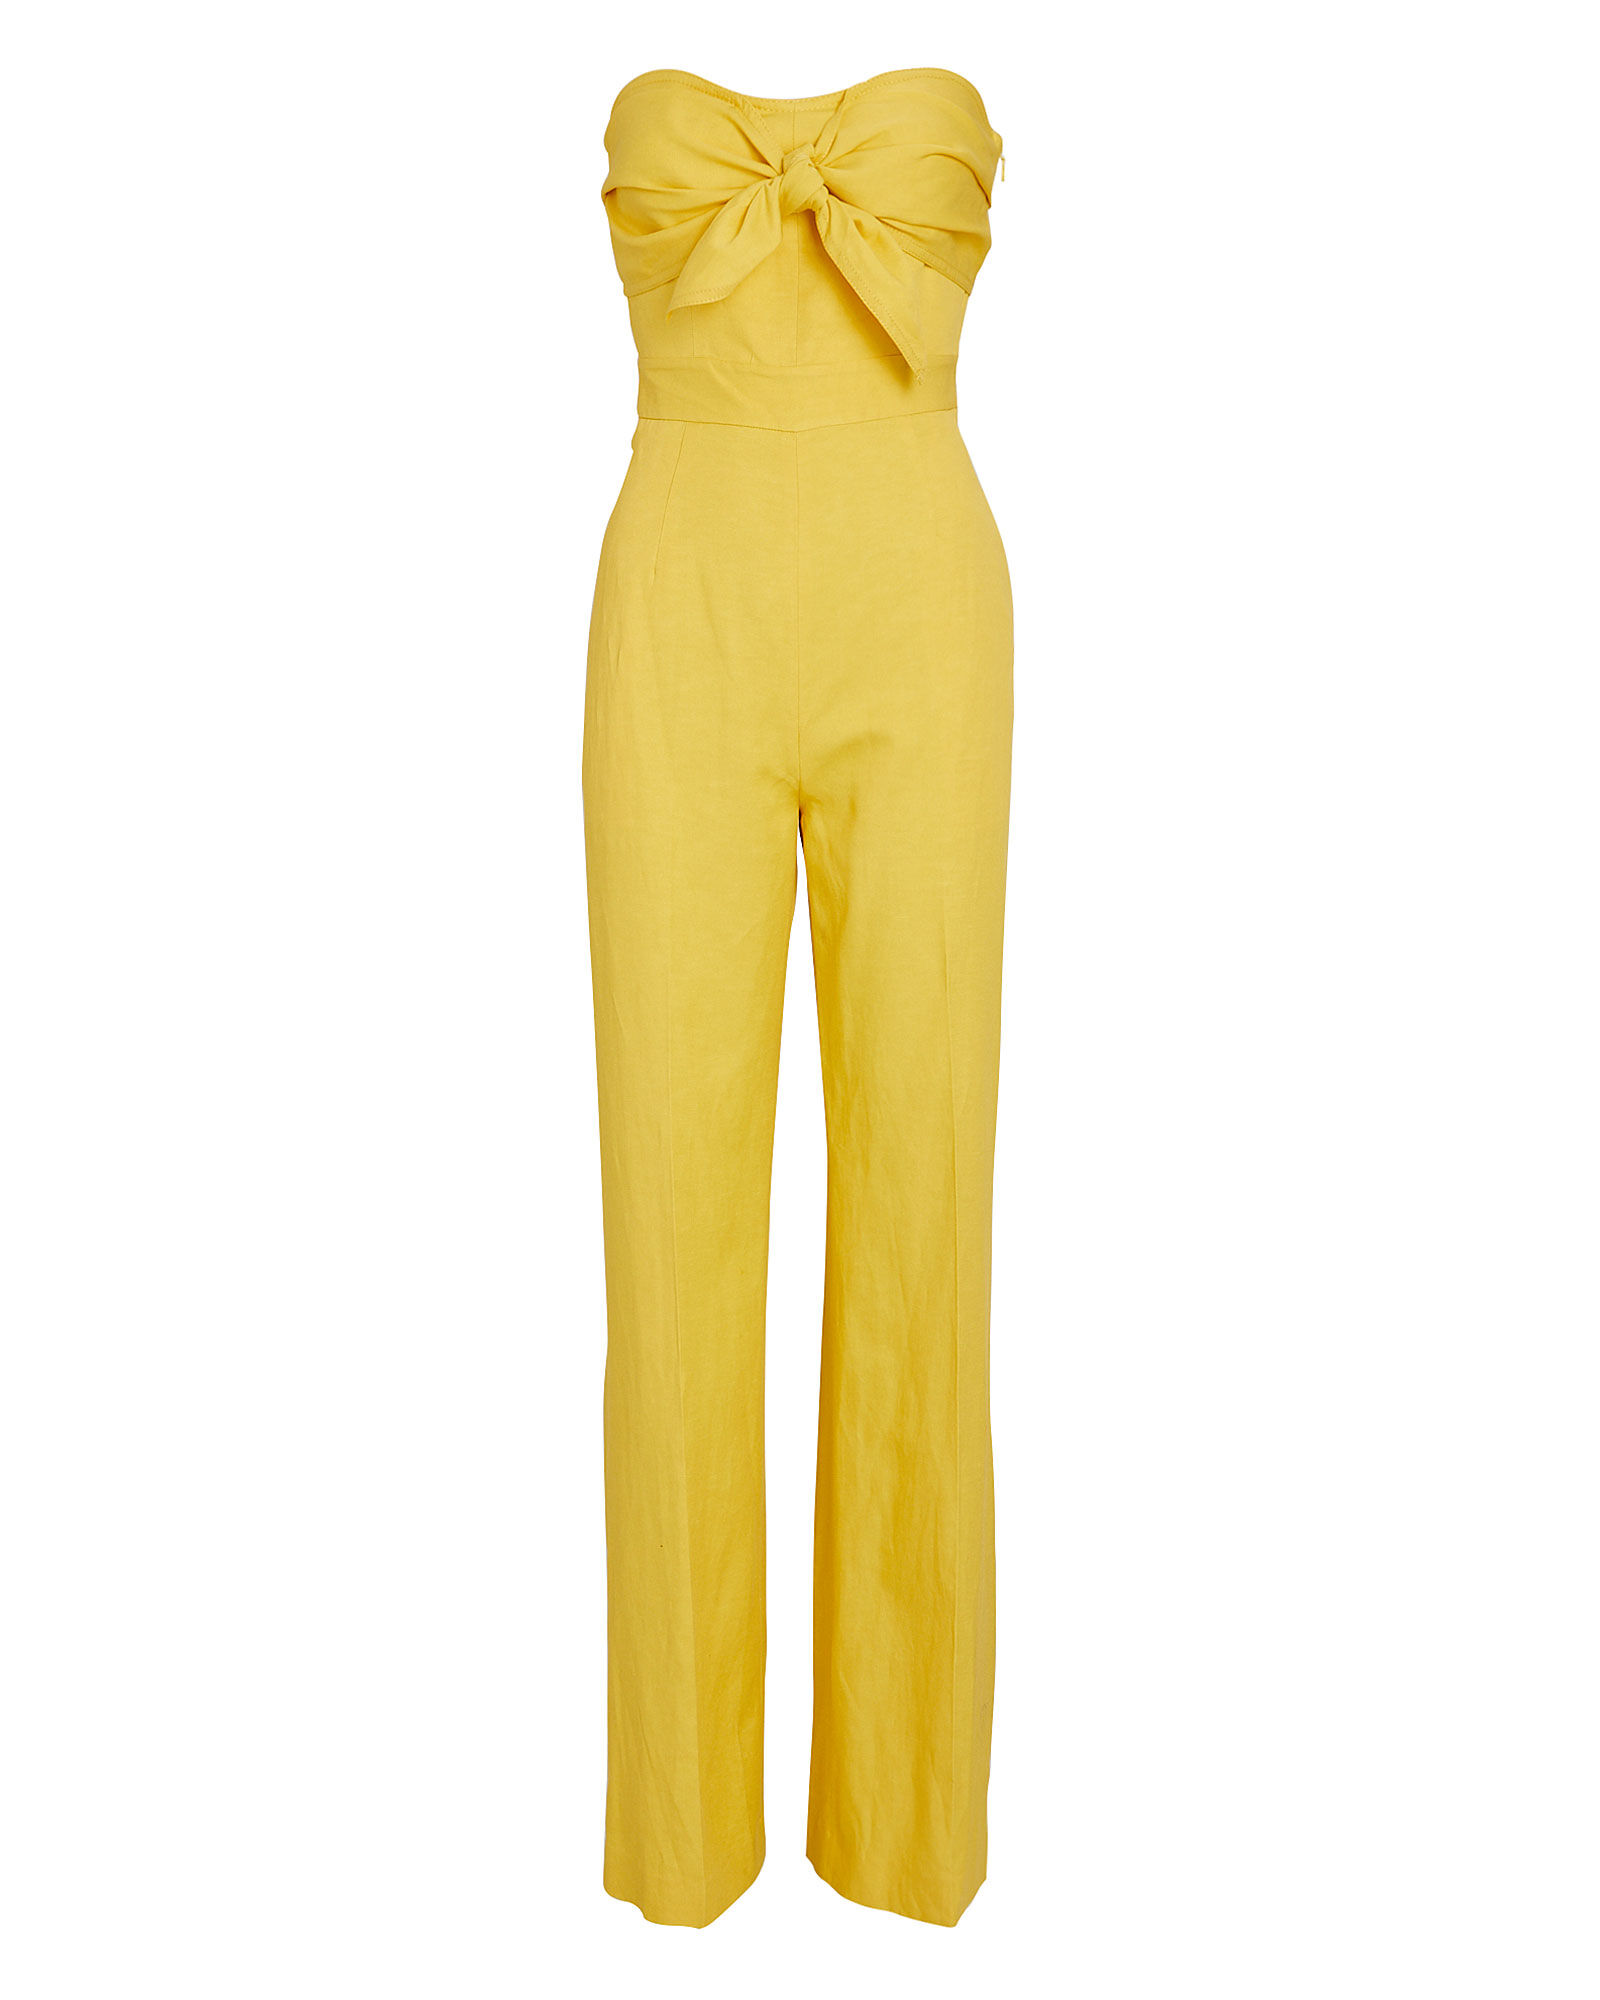 Alene Strapless Tie-Front Jumpsuit, YELLOW, hi-res